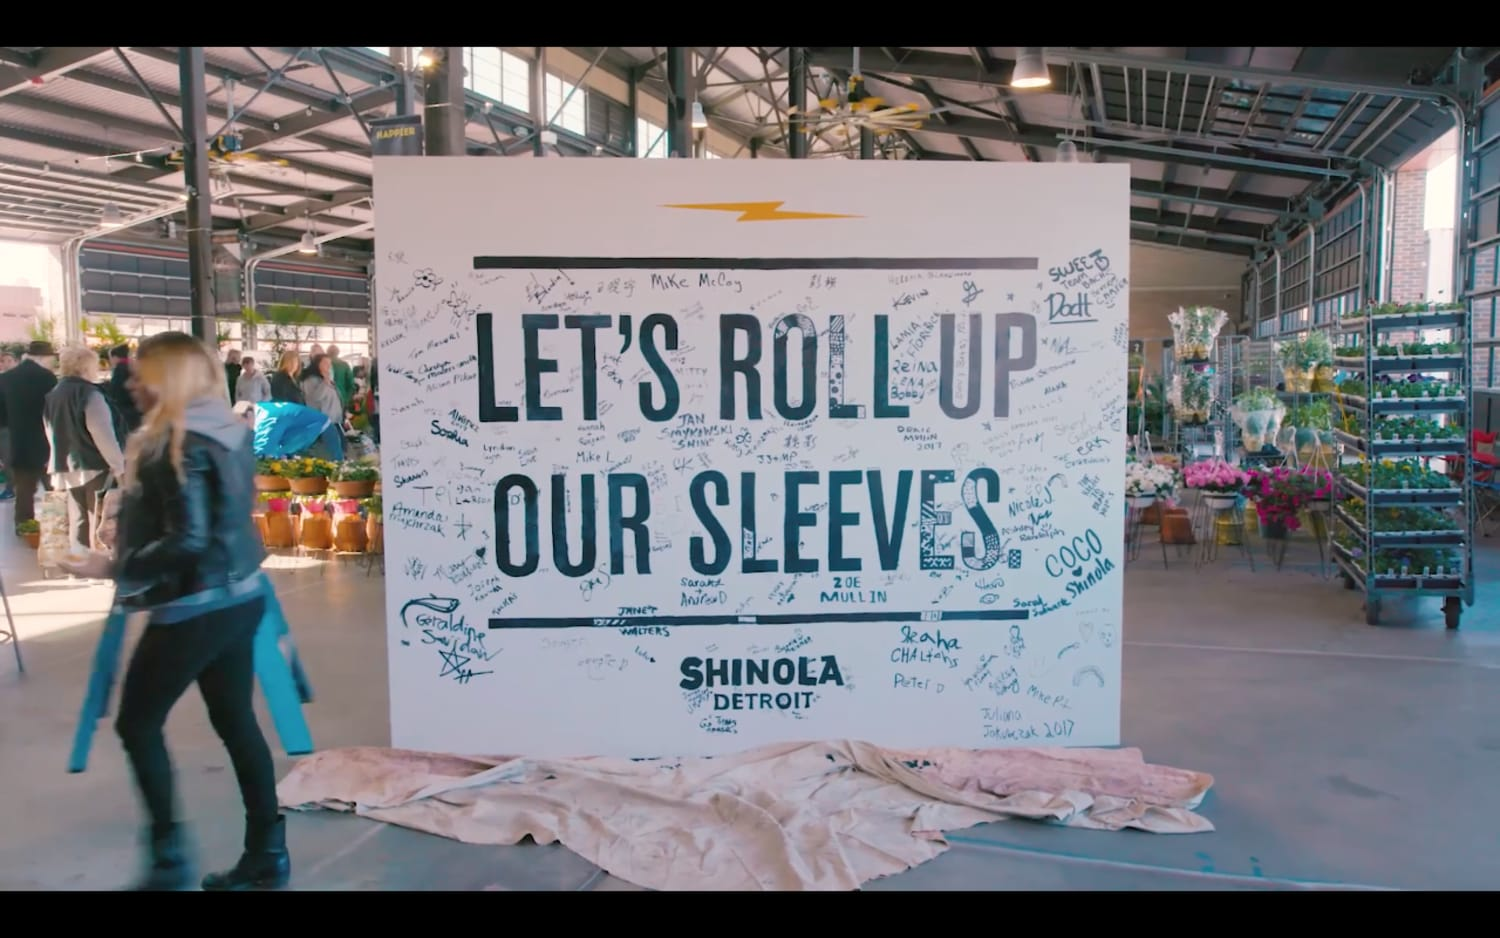 Made in America brand Shinolas Lets Roll Up Our Sleeves campaign in Detroit